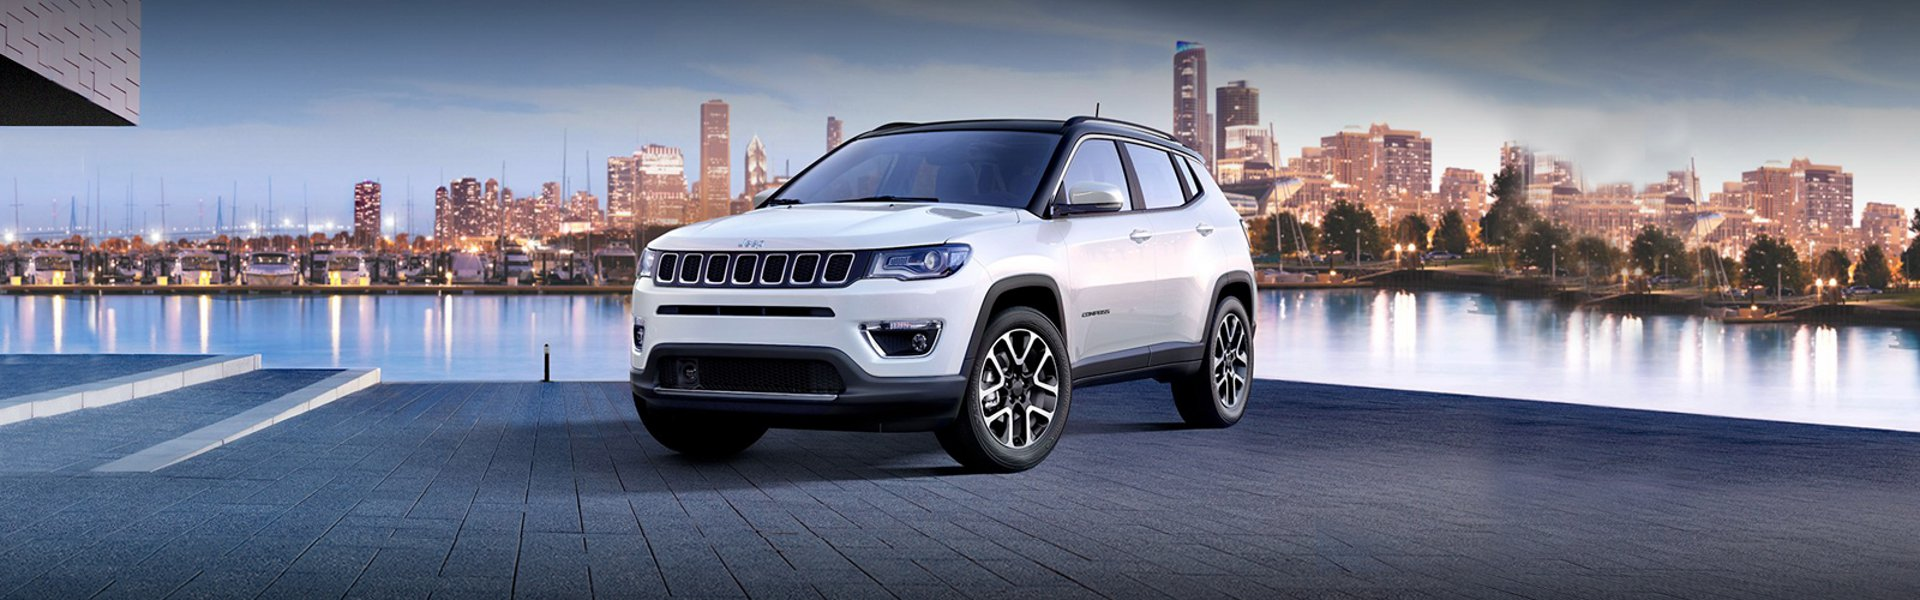 /images/mod_InteractiveBanner/img/18_1_1_2_jeep-new-compass-index-head.jpg